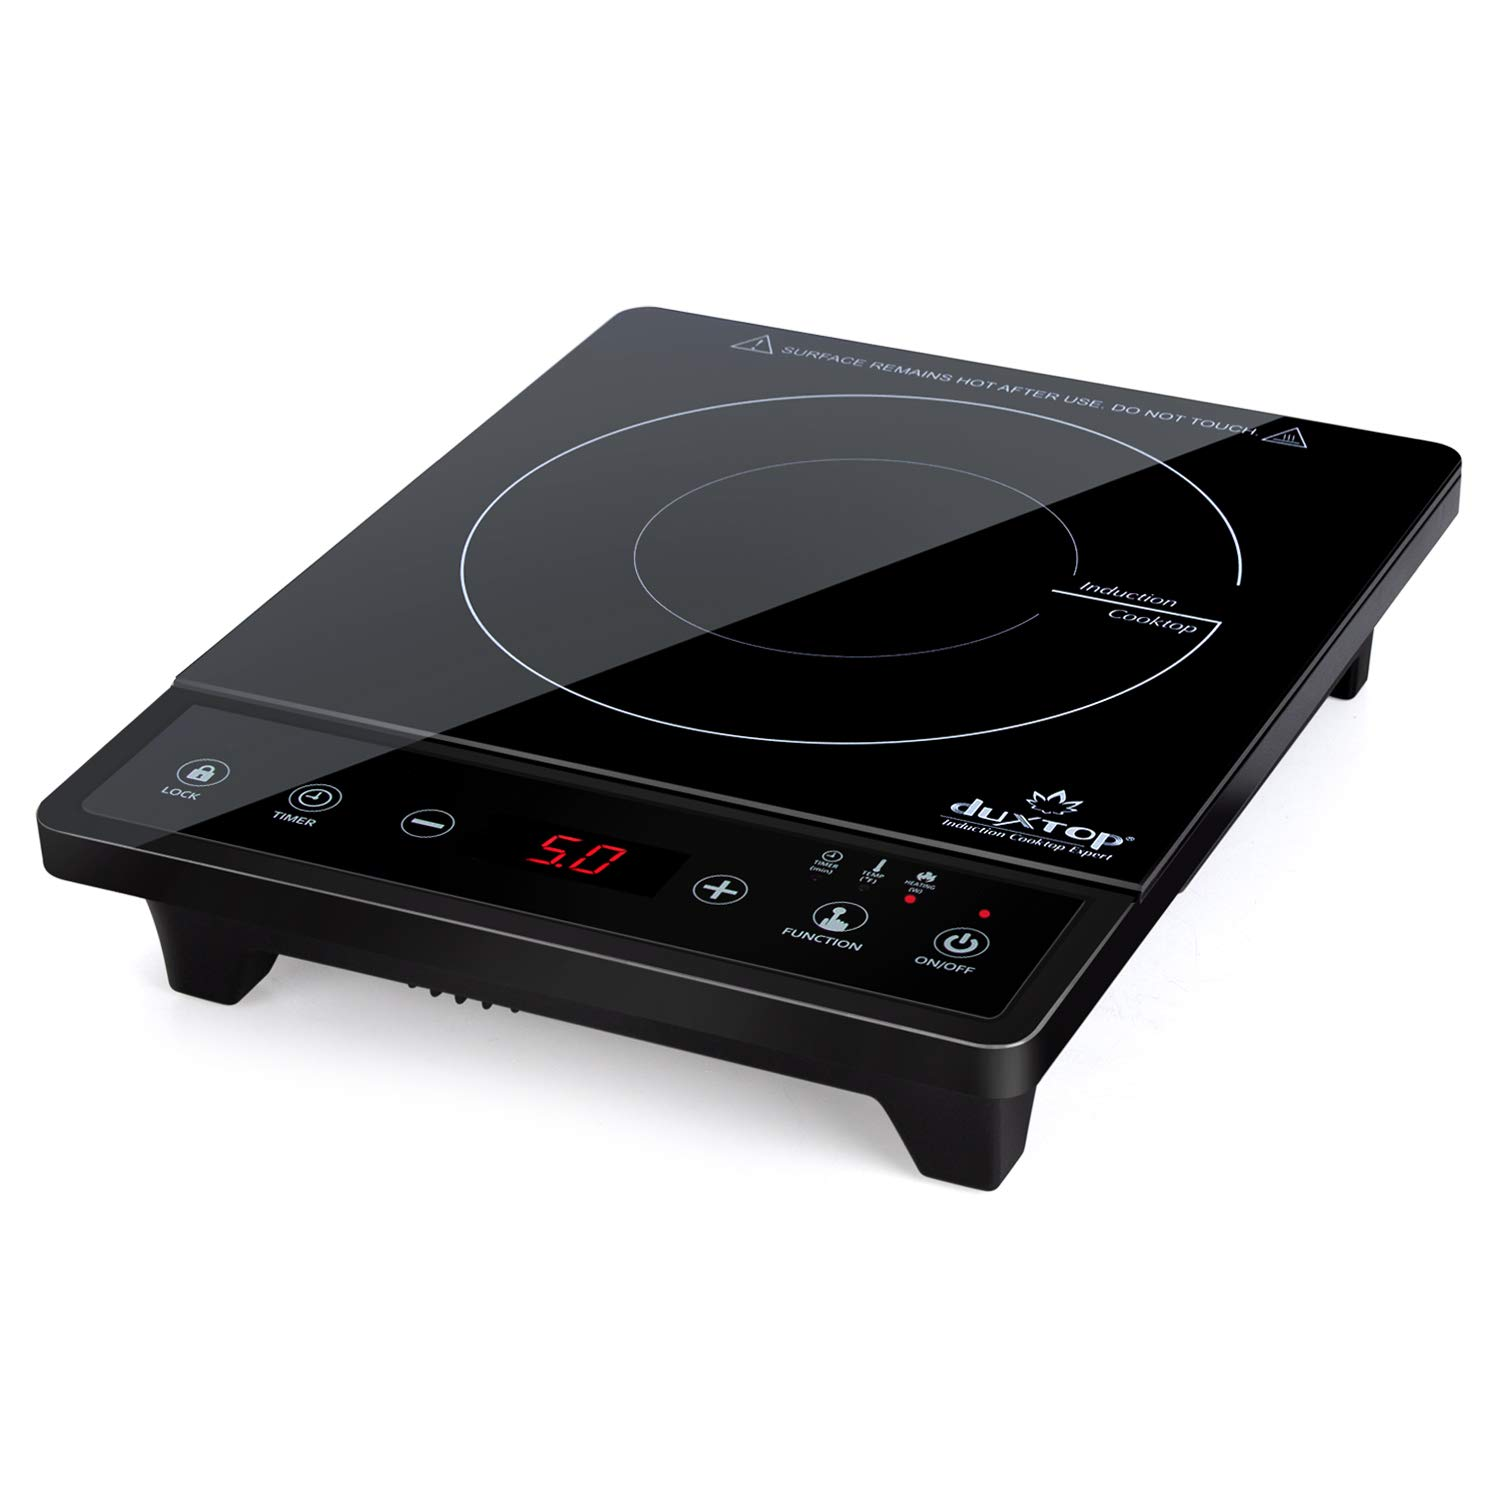 Duxtop Portable Induction Cooktop, Countertop Burner, Induction Burner with Timer and Sensor Touch, 1800W